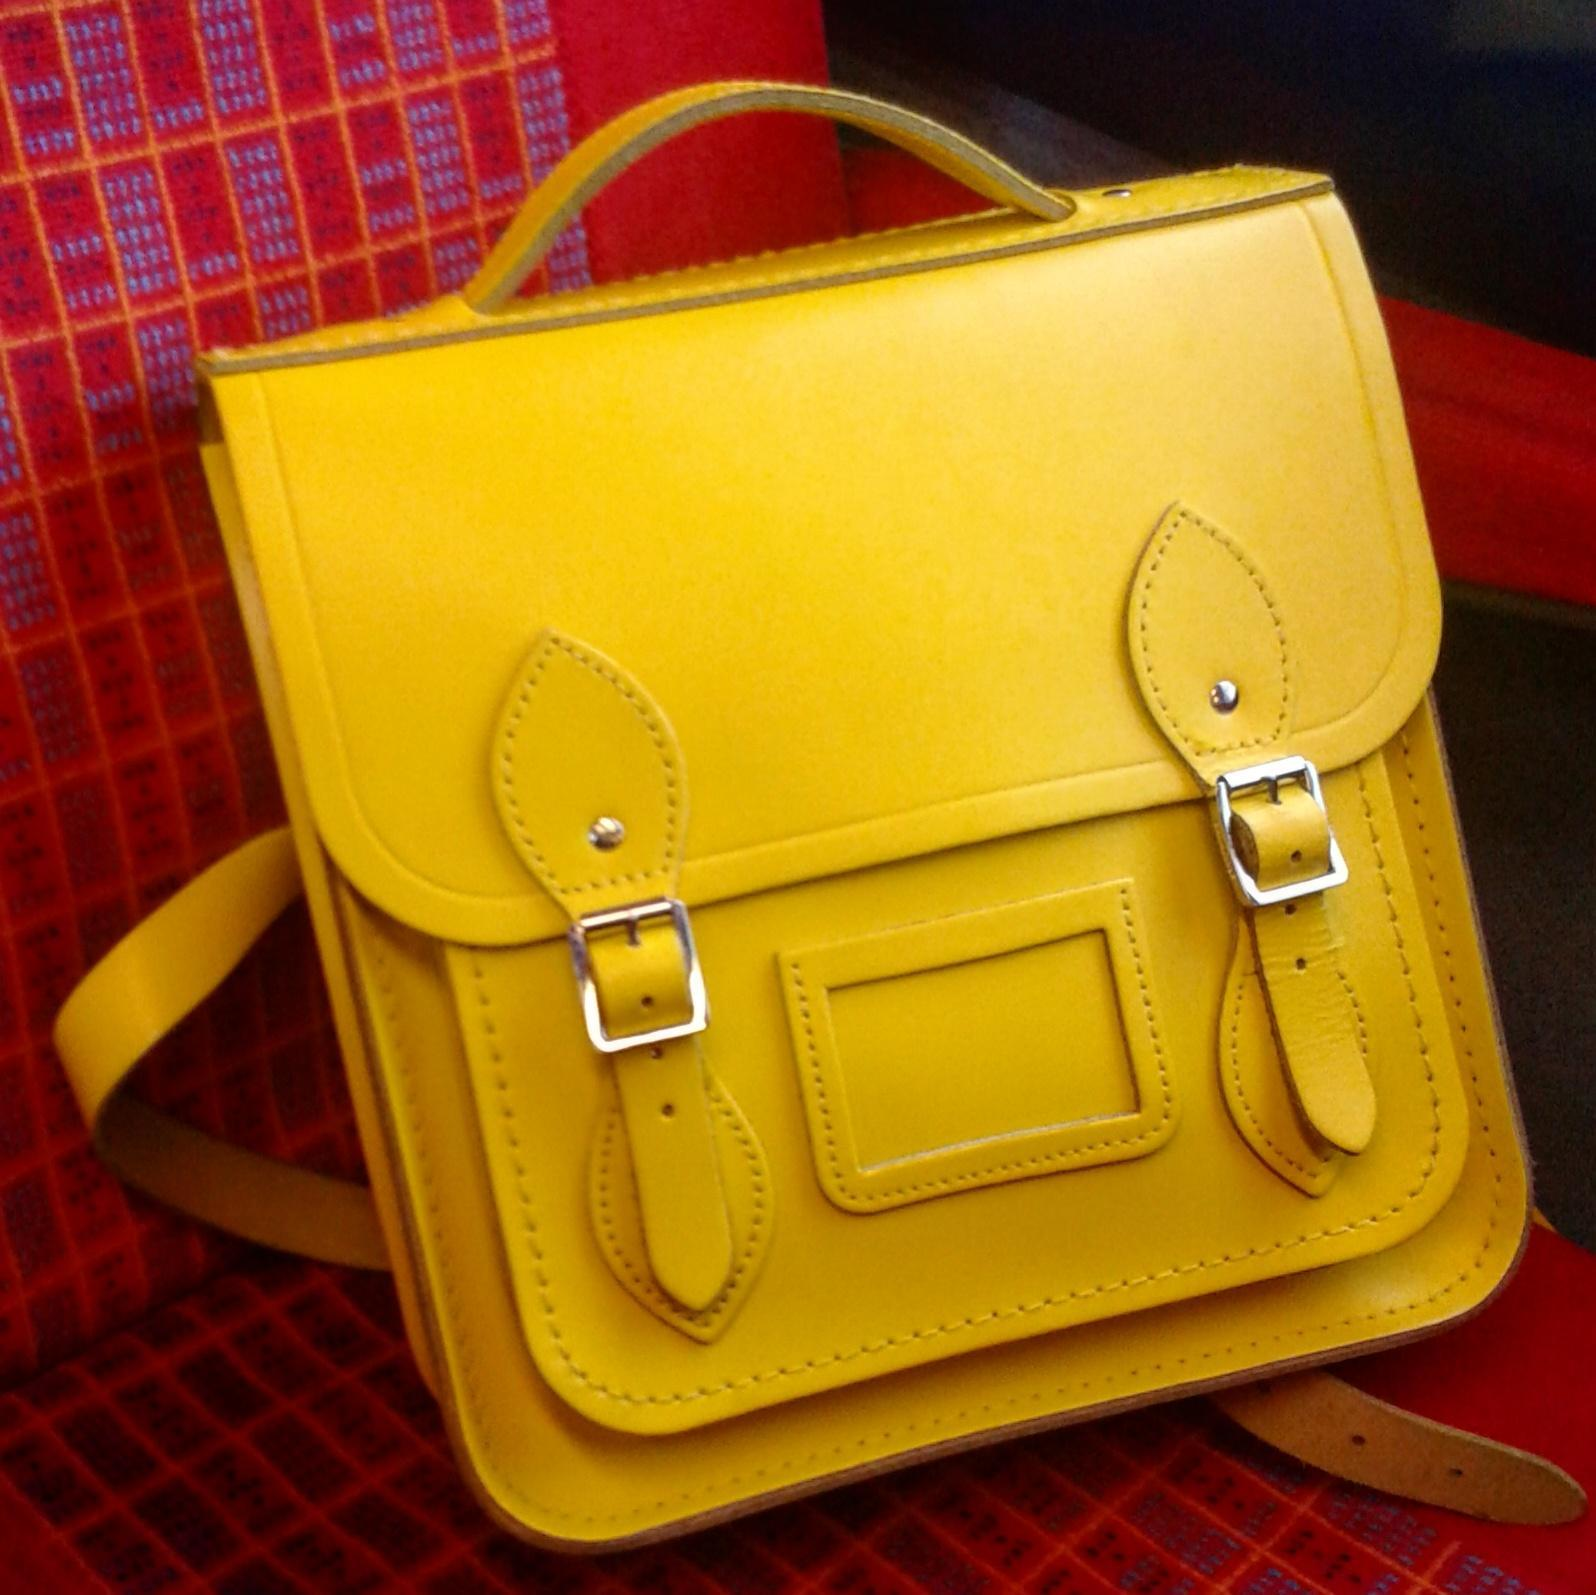 CSCStories - The Girl With The Yellow Bag By Dorothea Glenn